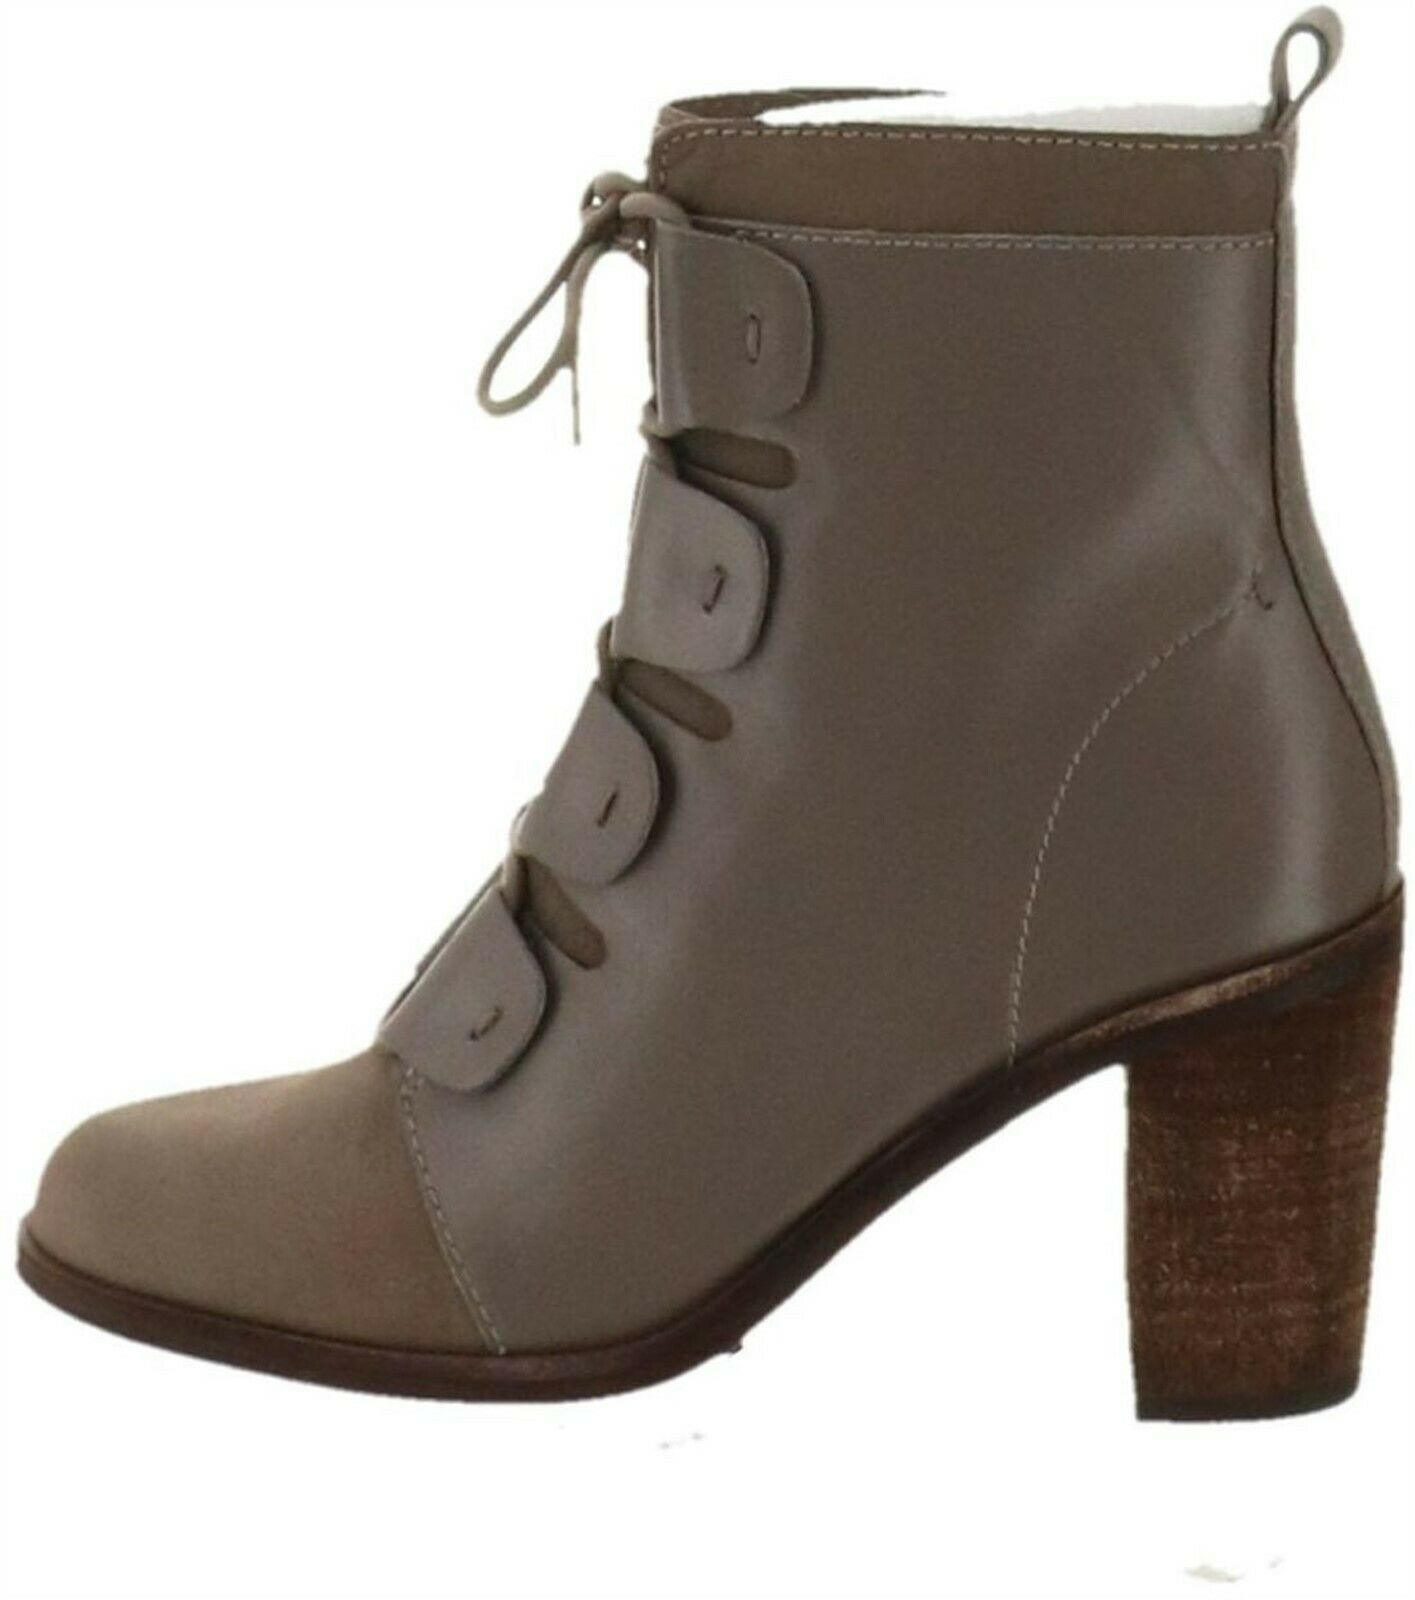 Primary image for ED Ellen DeGeneres Leather & Suede Ankle Boots Wallee Shadow 8M NEW A297004